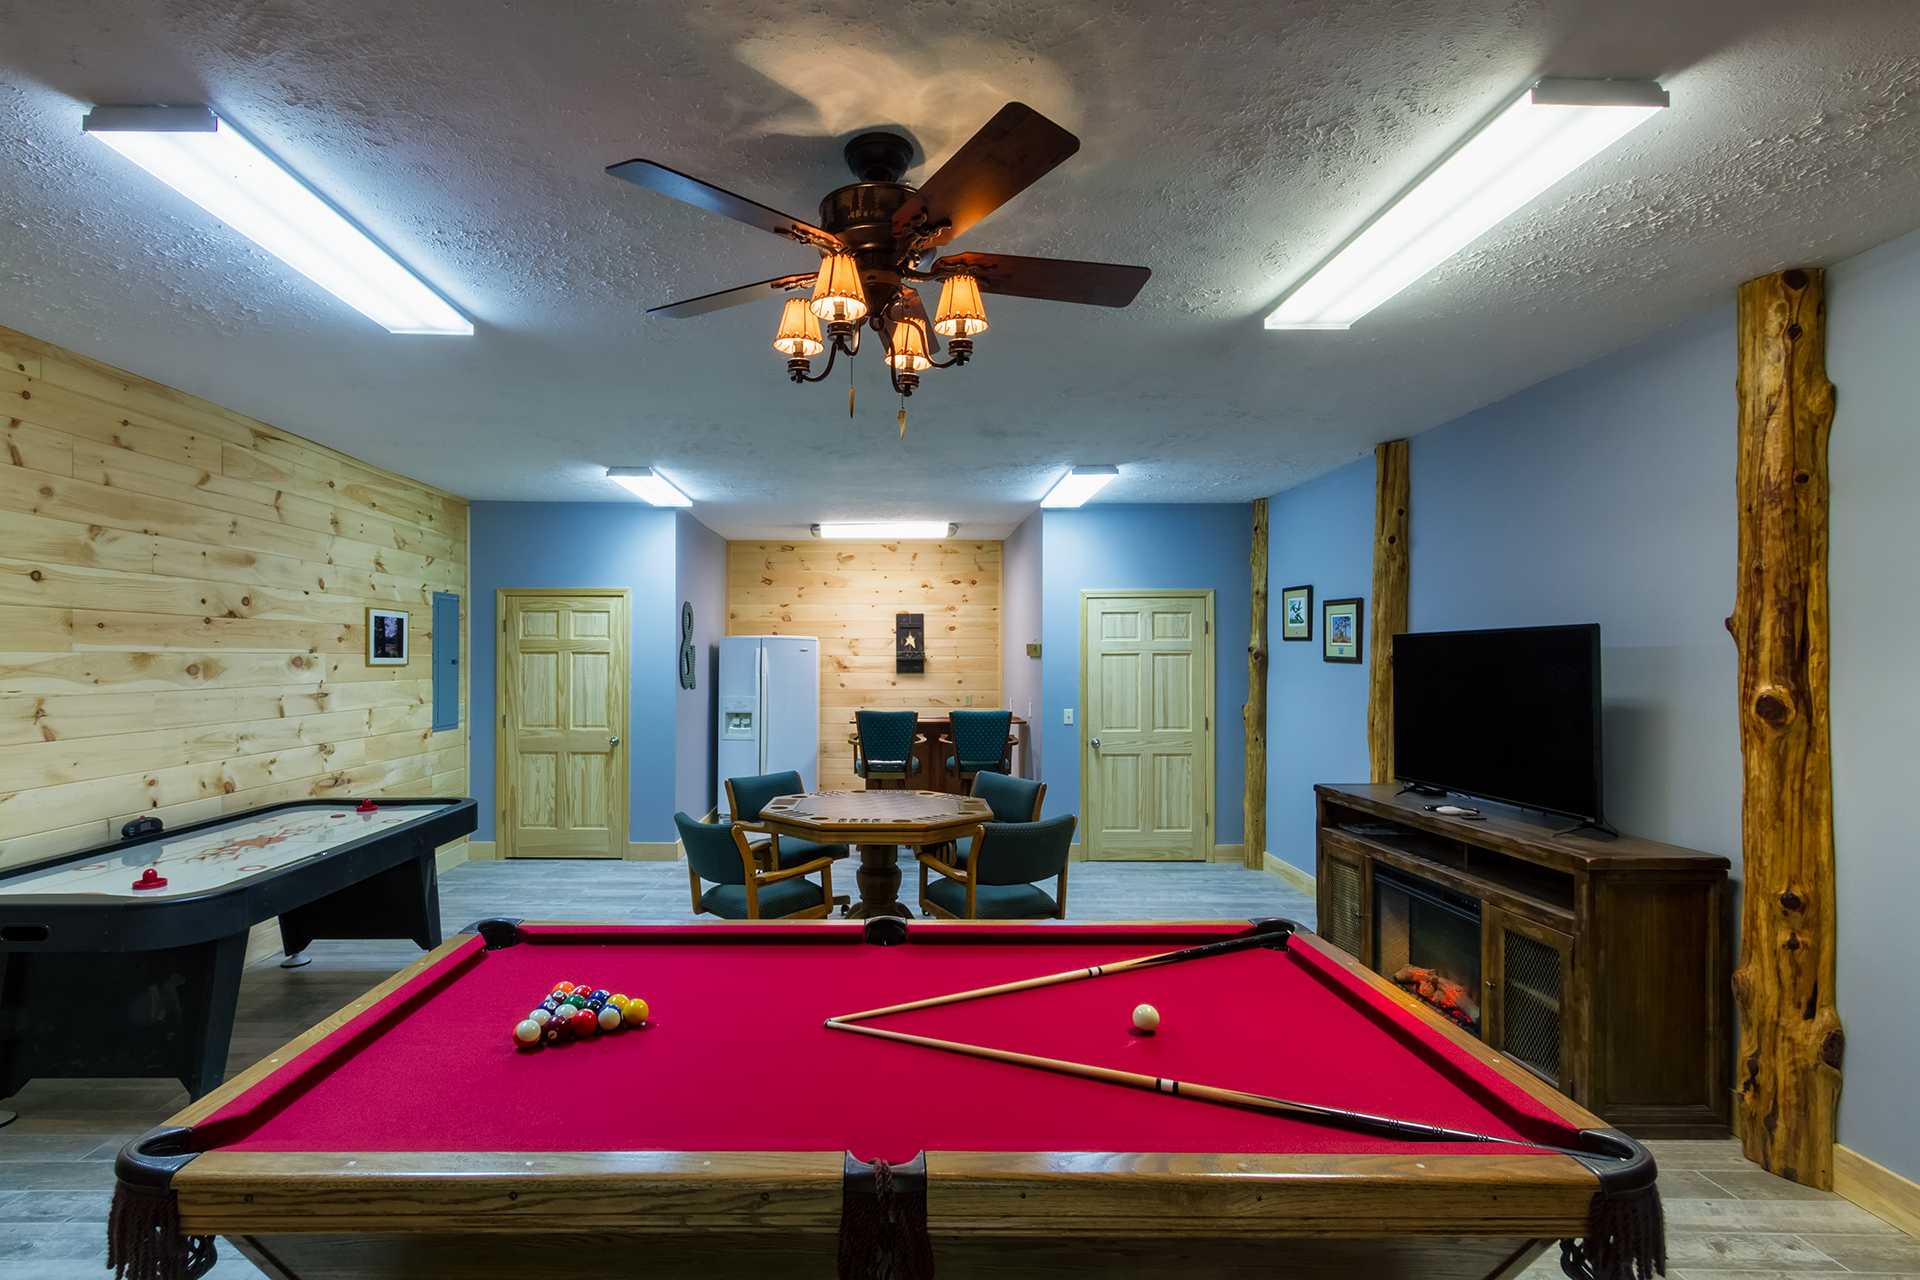 the game room on the lower level where you can play a game of billiards on the regulation size pool table or challenge someone to a game of air hockey